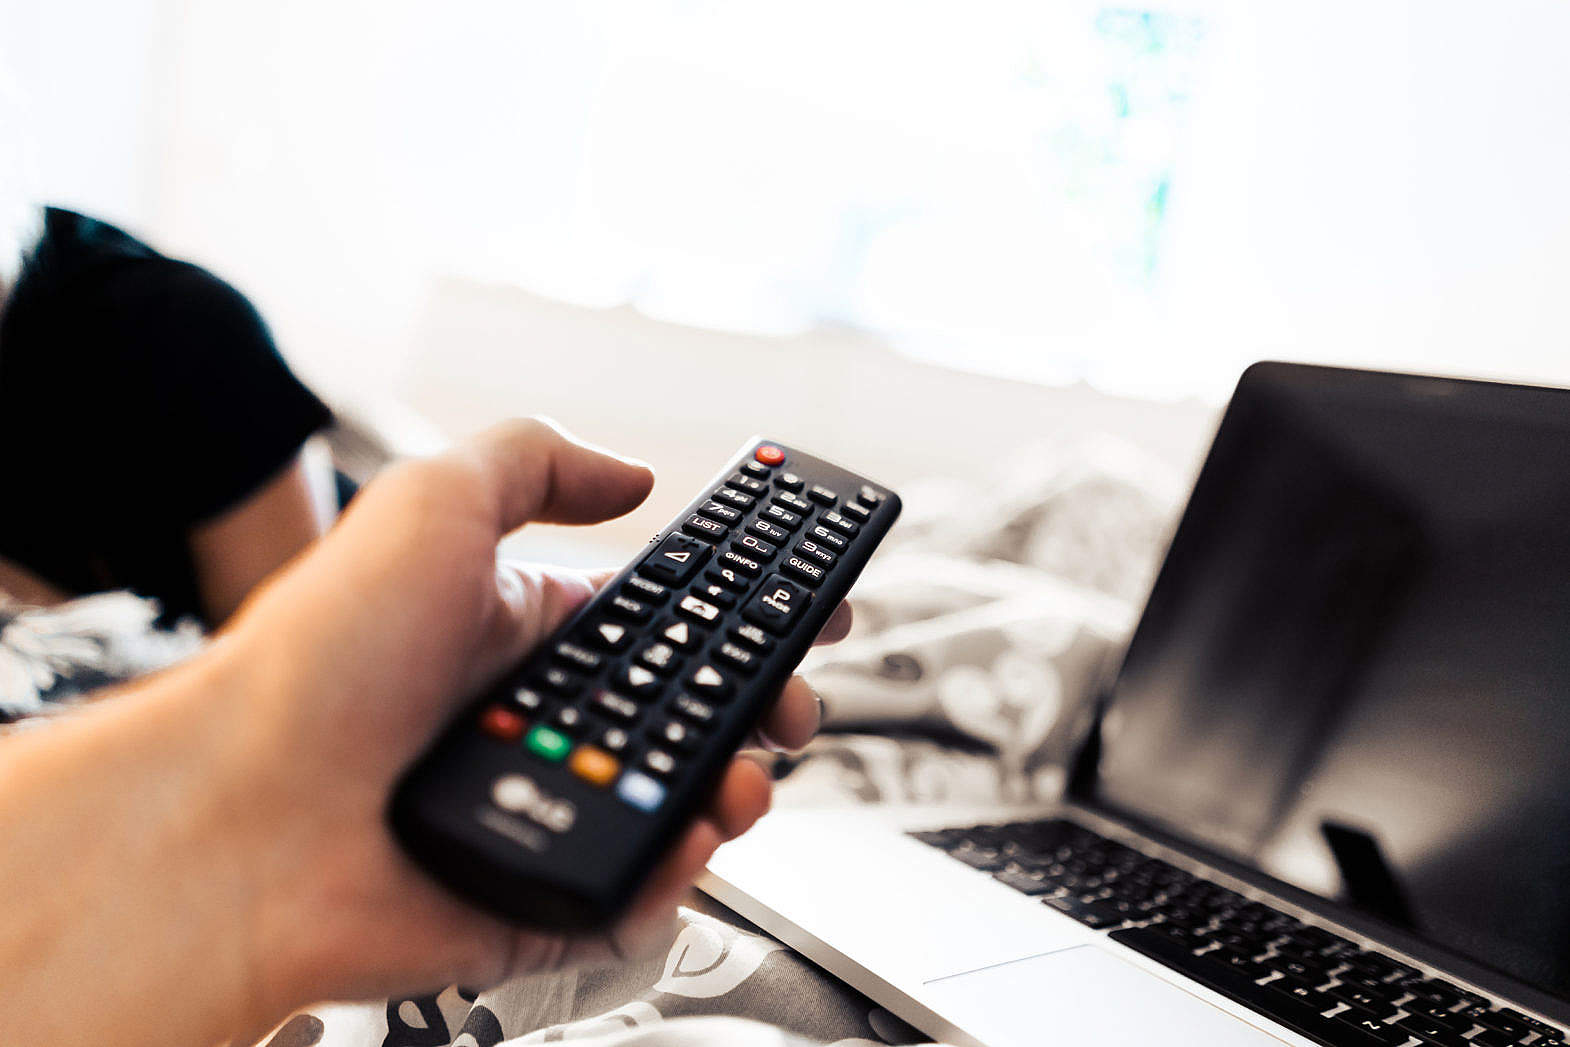 TV Controller Free Stock Photo Download